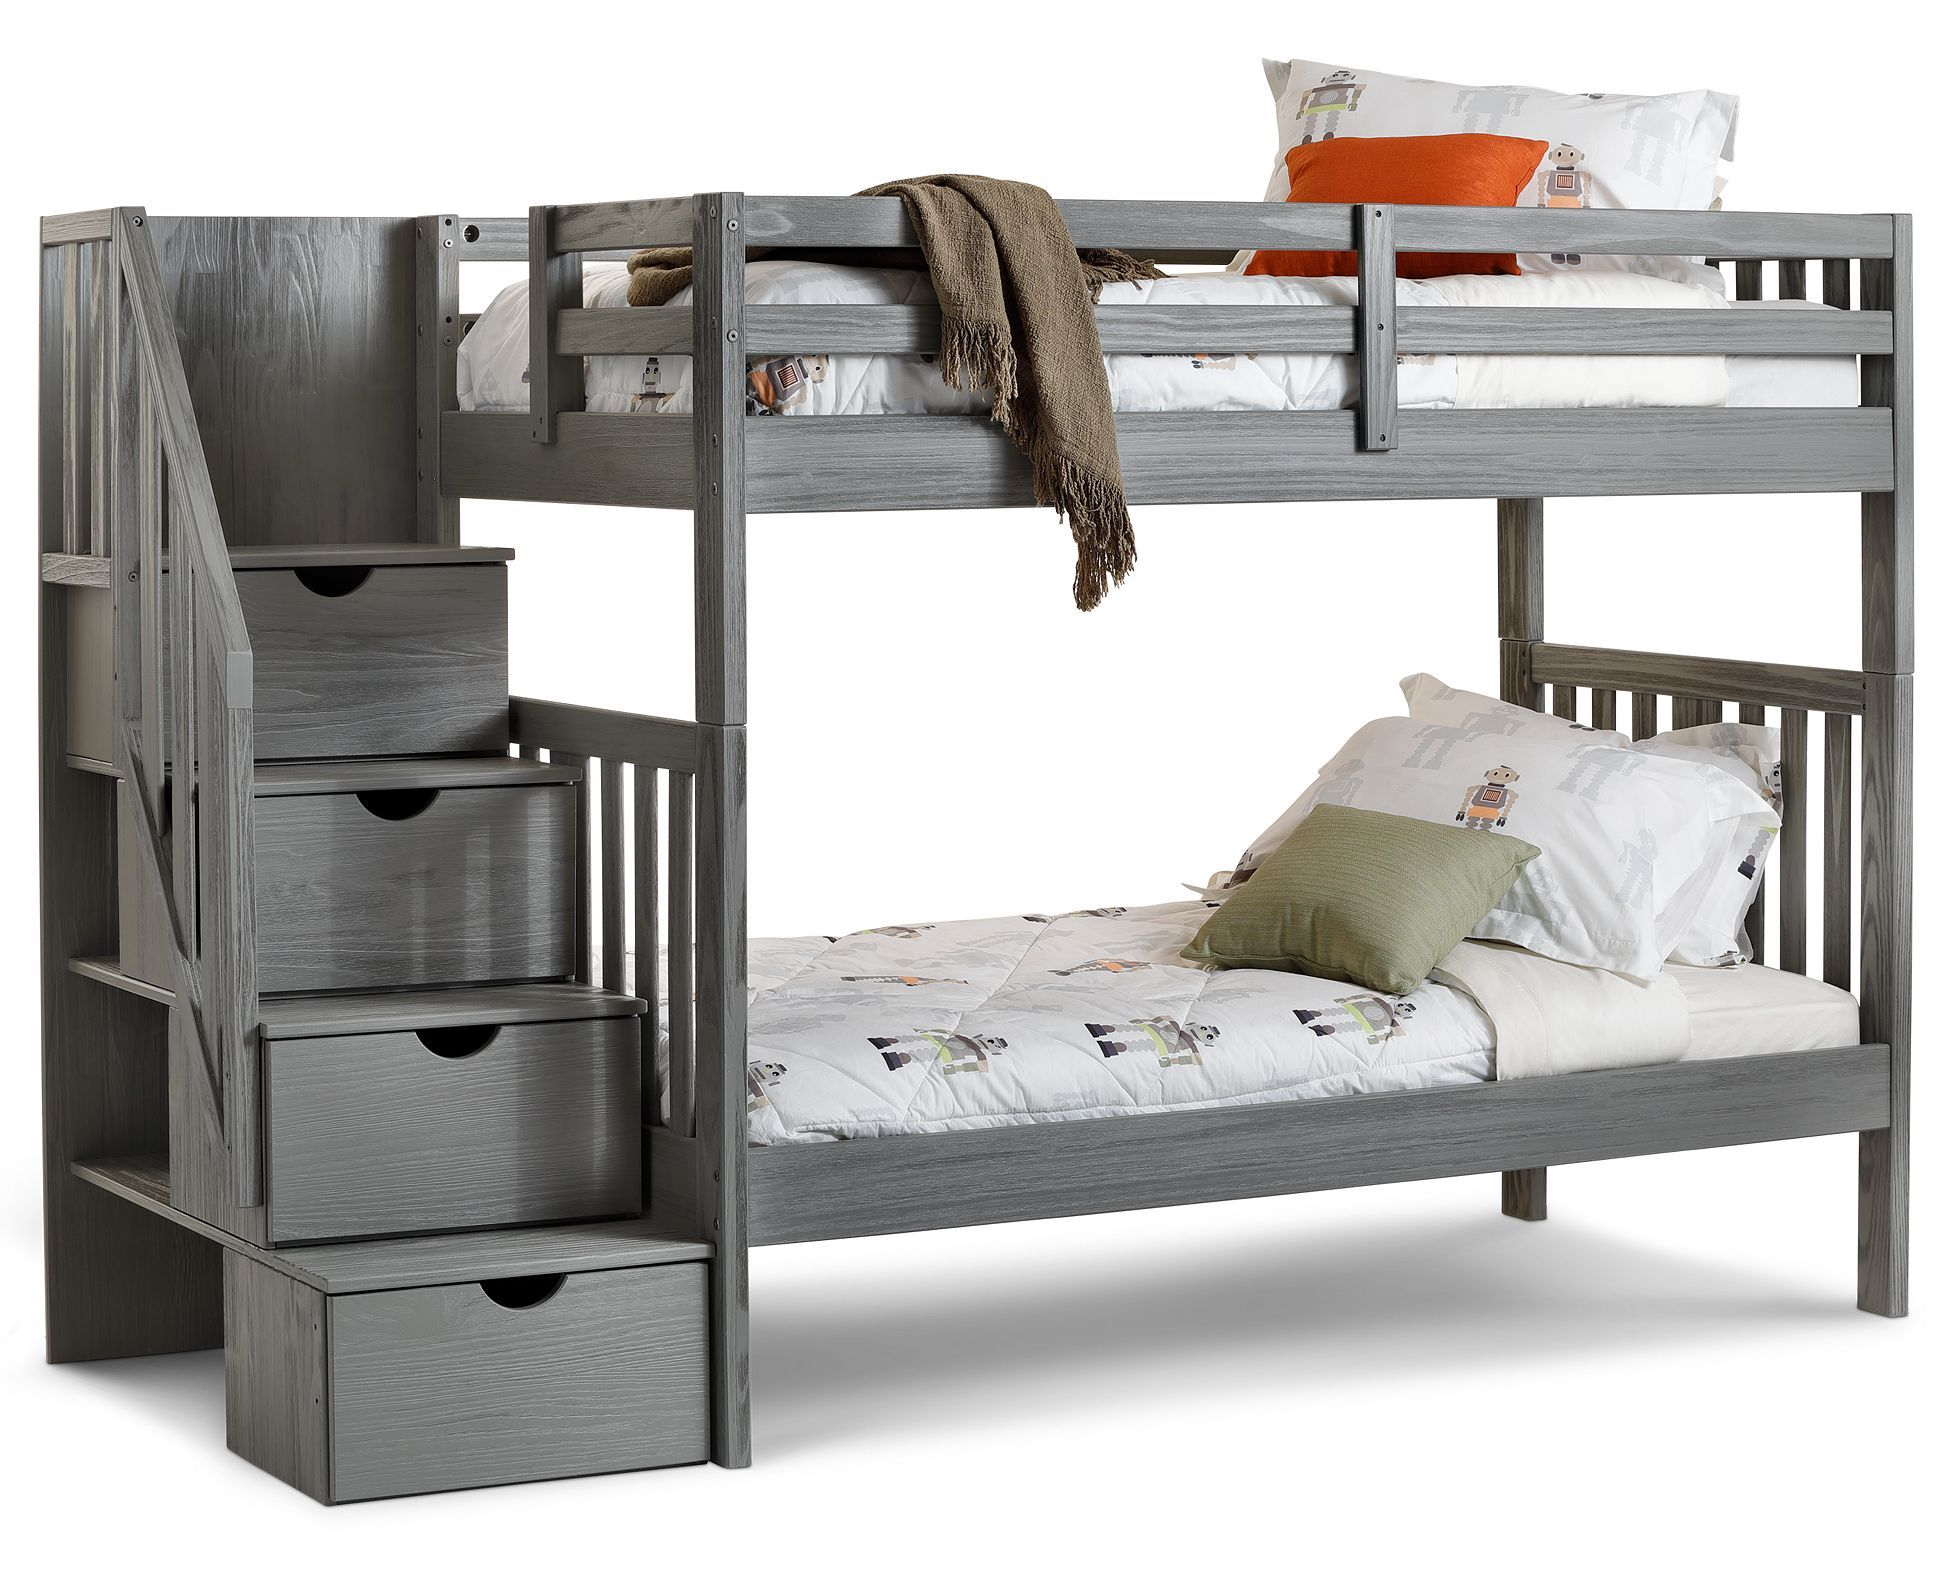 Dove Bunk Bed With Staircase Herreria